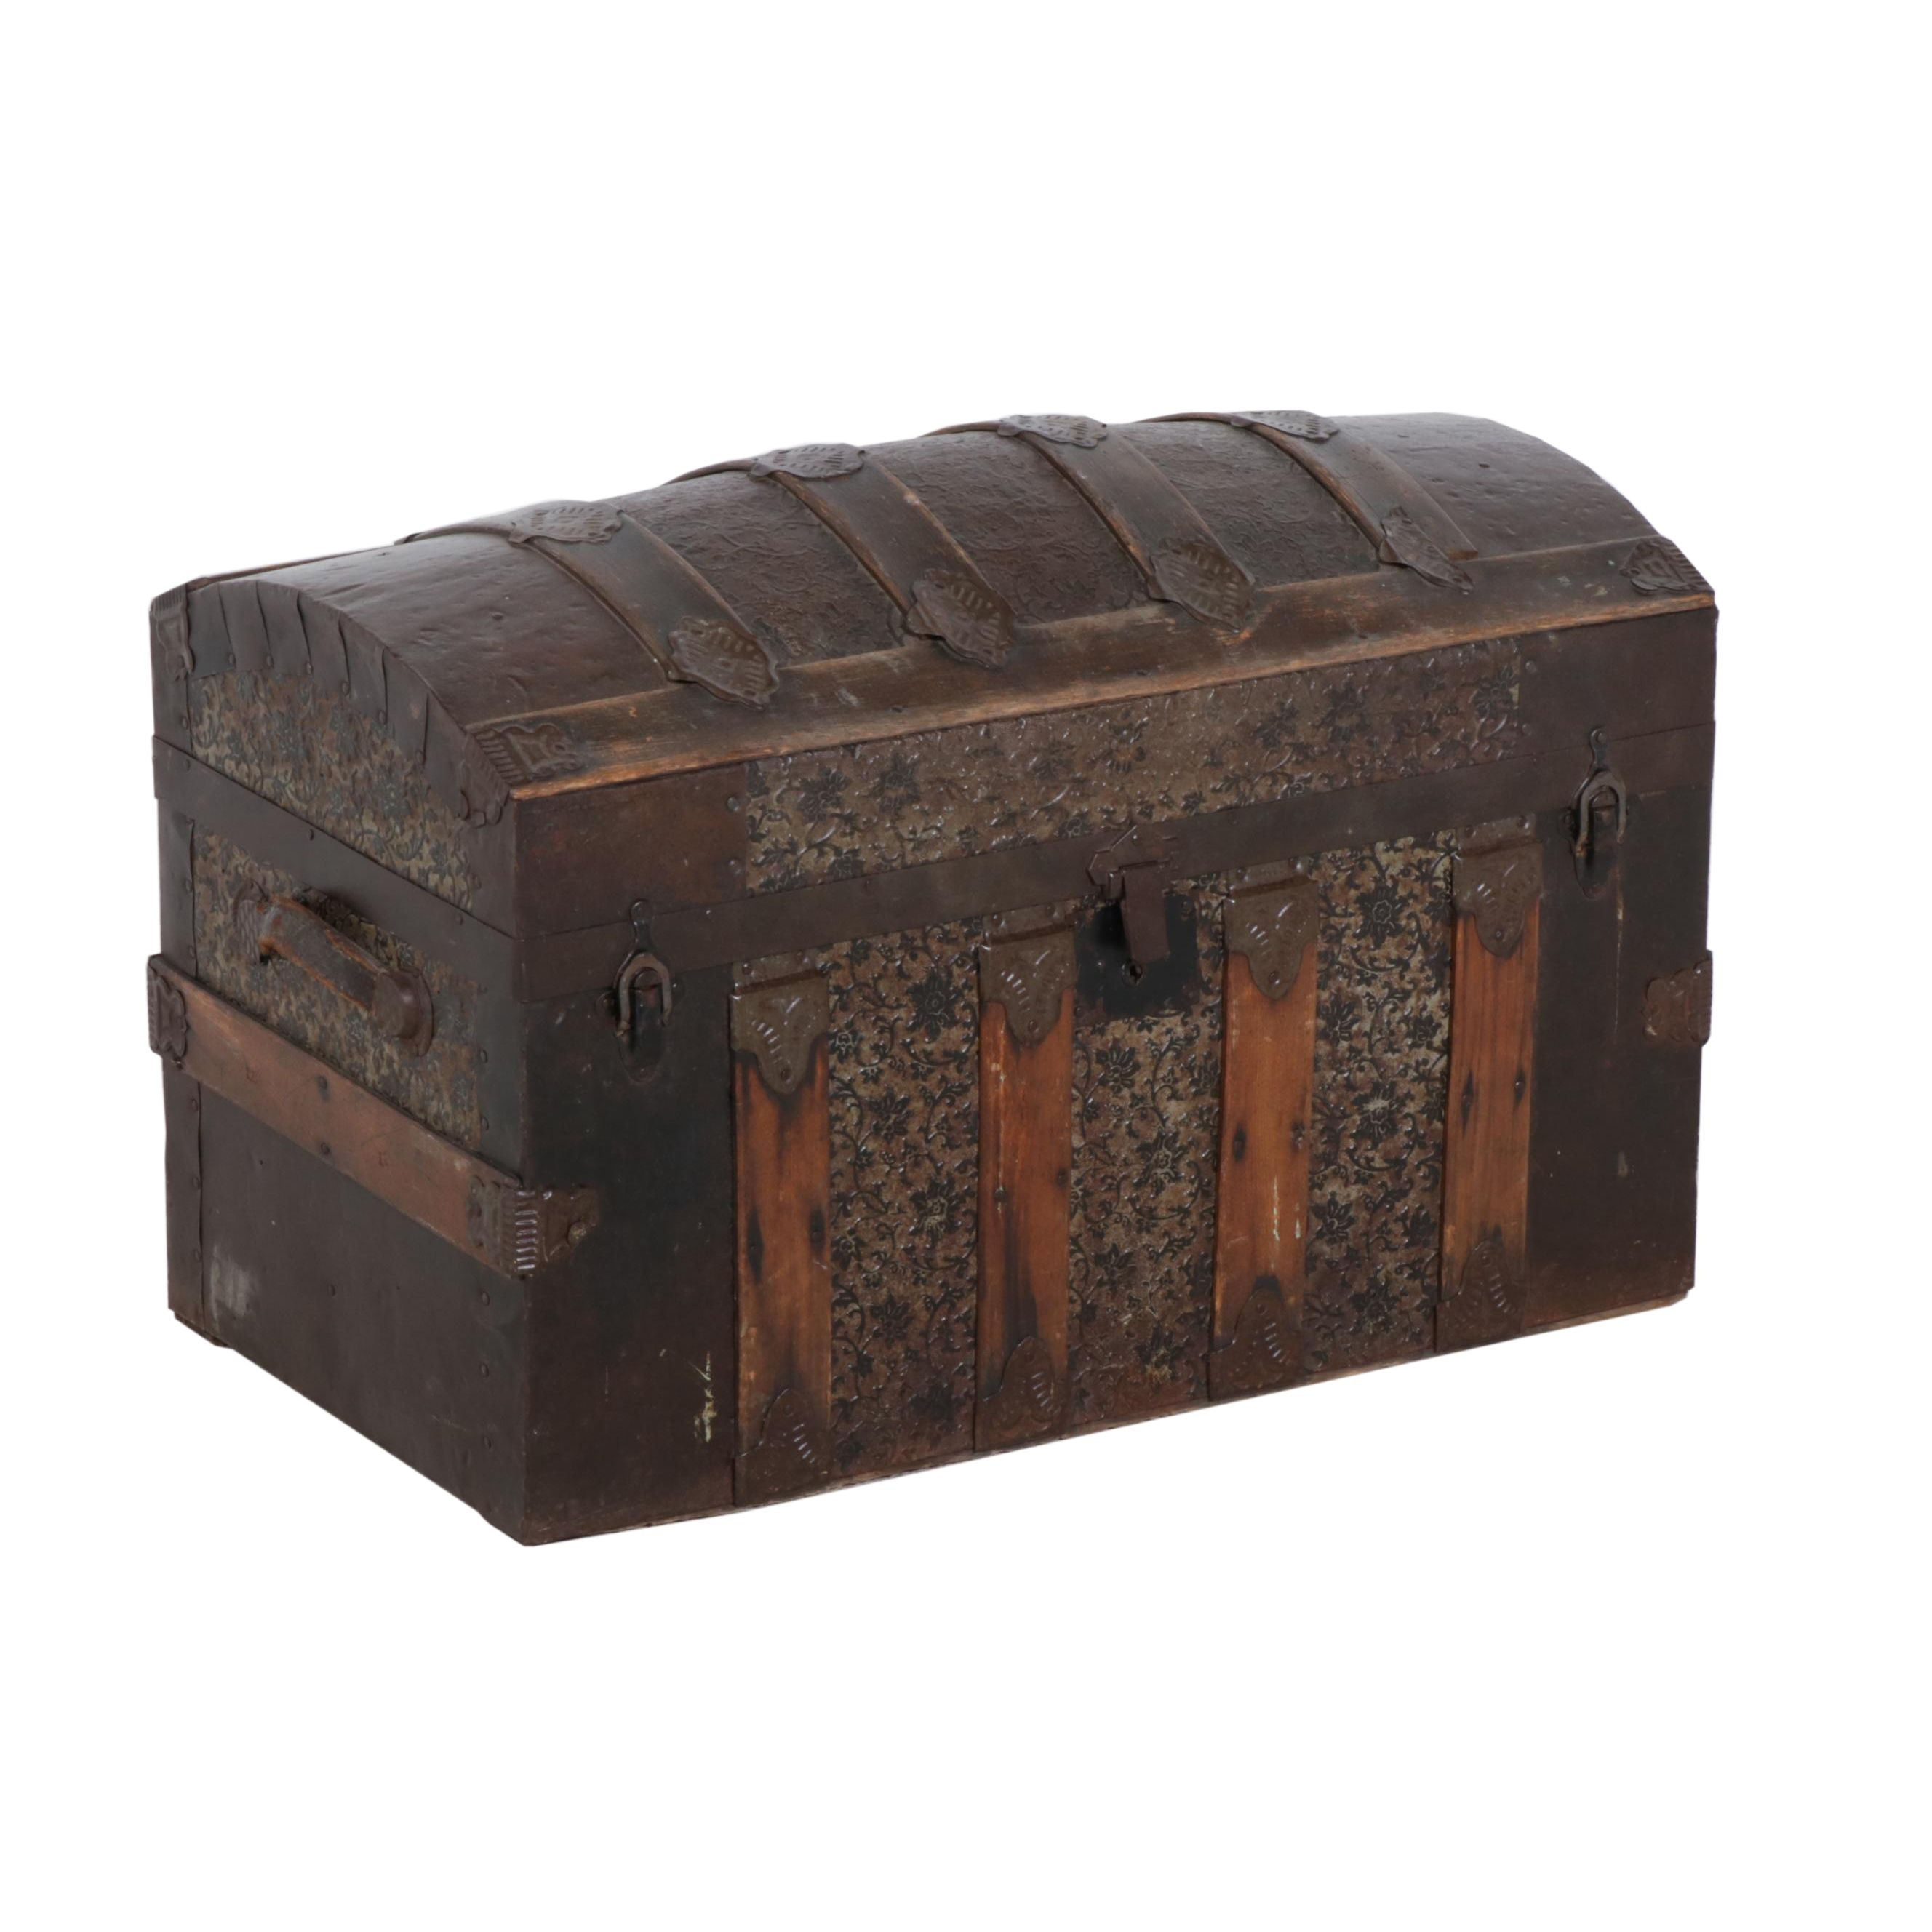 Wooden Trunk with Embossed Sheet Metal, 1910s